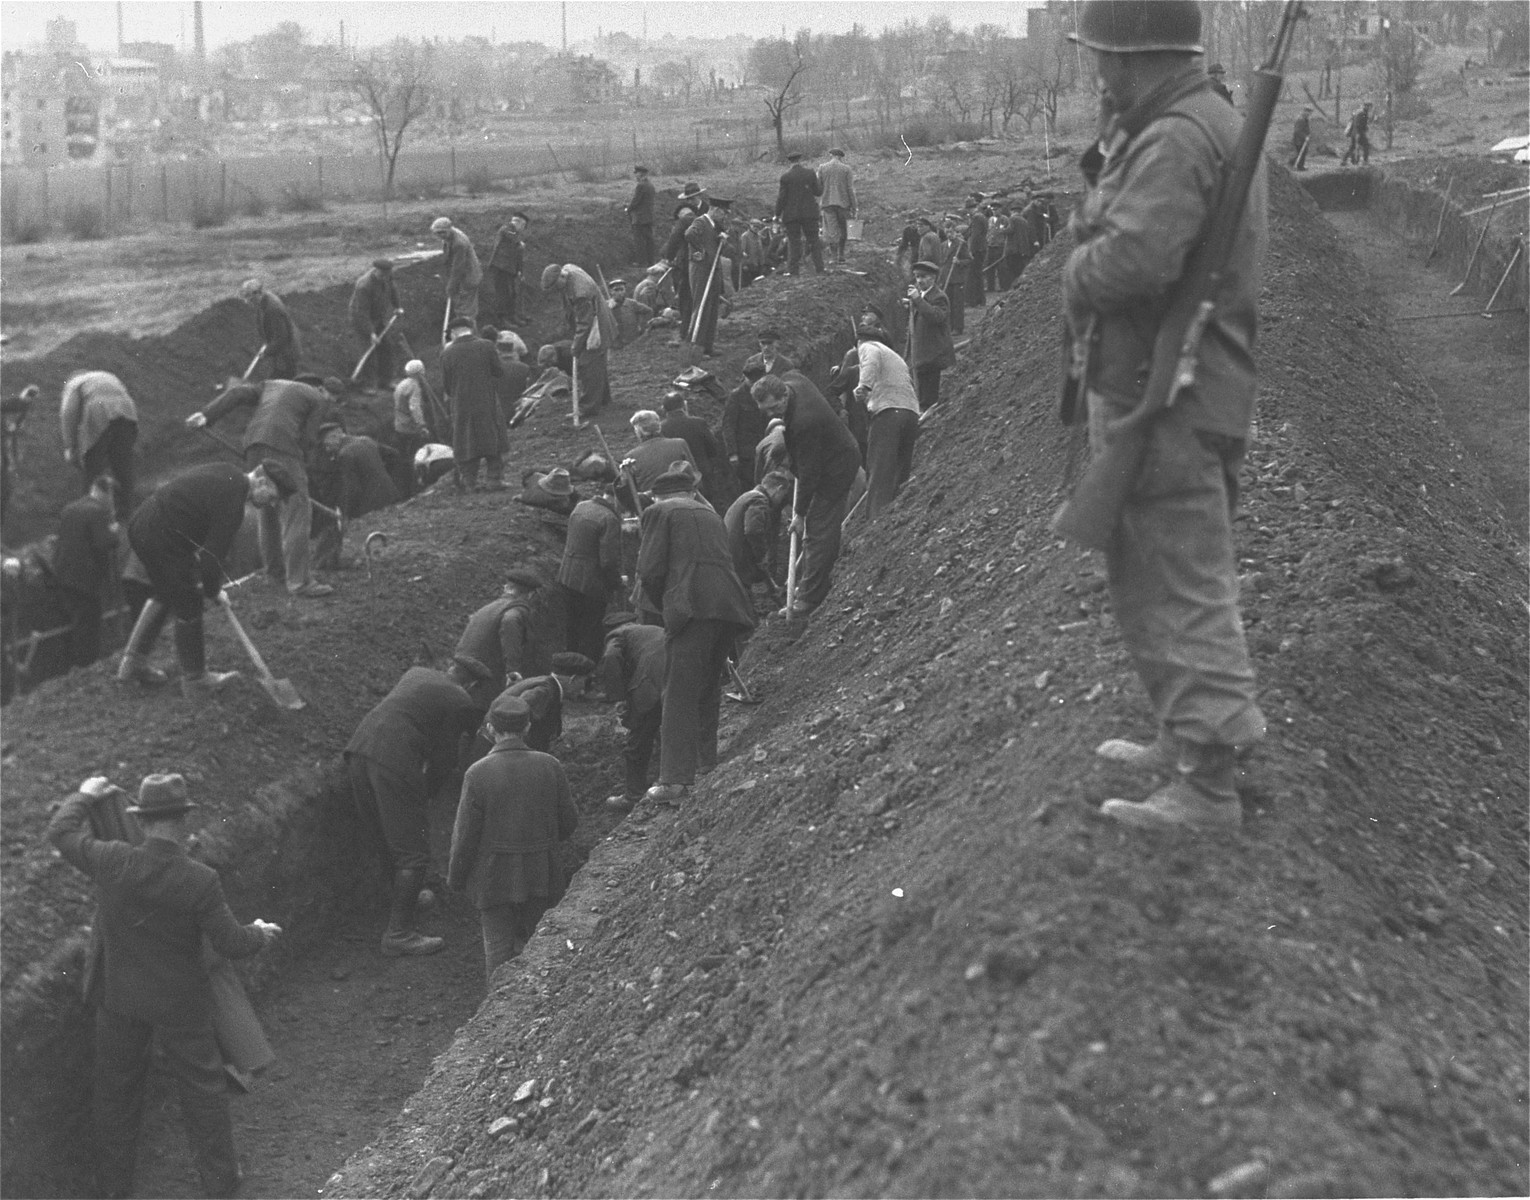 "German civilians from the town of Nordhausen dig mass graves for the victims of the Nordhausen concentration camp.  The original Signal Corps caption reads, ""U.S. TROOPS OVERRUN NAZI SLAUGHTER HOUSE.  The bodies of hundreds of former slave workers of the Nazis were discovered by soldiers of the Third Armored and 104th Infantry Divisions First U.S. Army, in ""Lager-Nordhausen,"" Nazi concentration camp in Nordhausen, Germany, which usually contained between 3,000 and 4,000 prisoners. The dead lay beside the sick and dying and the Nazi camp masters made no attempt to check the contagious diseases and gangrene suffered by maltreated prisoners of many nationalities.  The bodies, which were no more than skeletons, were buried by German civilians who were also forced to dig mass graves.  The few prisoners still alive, who had been beaten, maltreated in other ways and starved by the Nazis, have been removed to allied hospitals.  Troops of the First U.S. Army entered Nordhausen April 10, 1945.  The Reich city, 120 miles southwest of Berlin, was a manufacturing center for Nazi V-weapons.   BIPPA                                                         EA 62445  THIS PHOTO SHOWS: Guarded by a soldier of the First U.S. Army, civilians of Nordhausen, Germany, dig mass graves for the bodies of the camp inmates. U.S. Signal Corps Photo ETO-HQ-45-32273 SERVICED BY LONDON OWI TO LIST B CERTIFIED AS PASED BY SHAEF CENSOR"